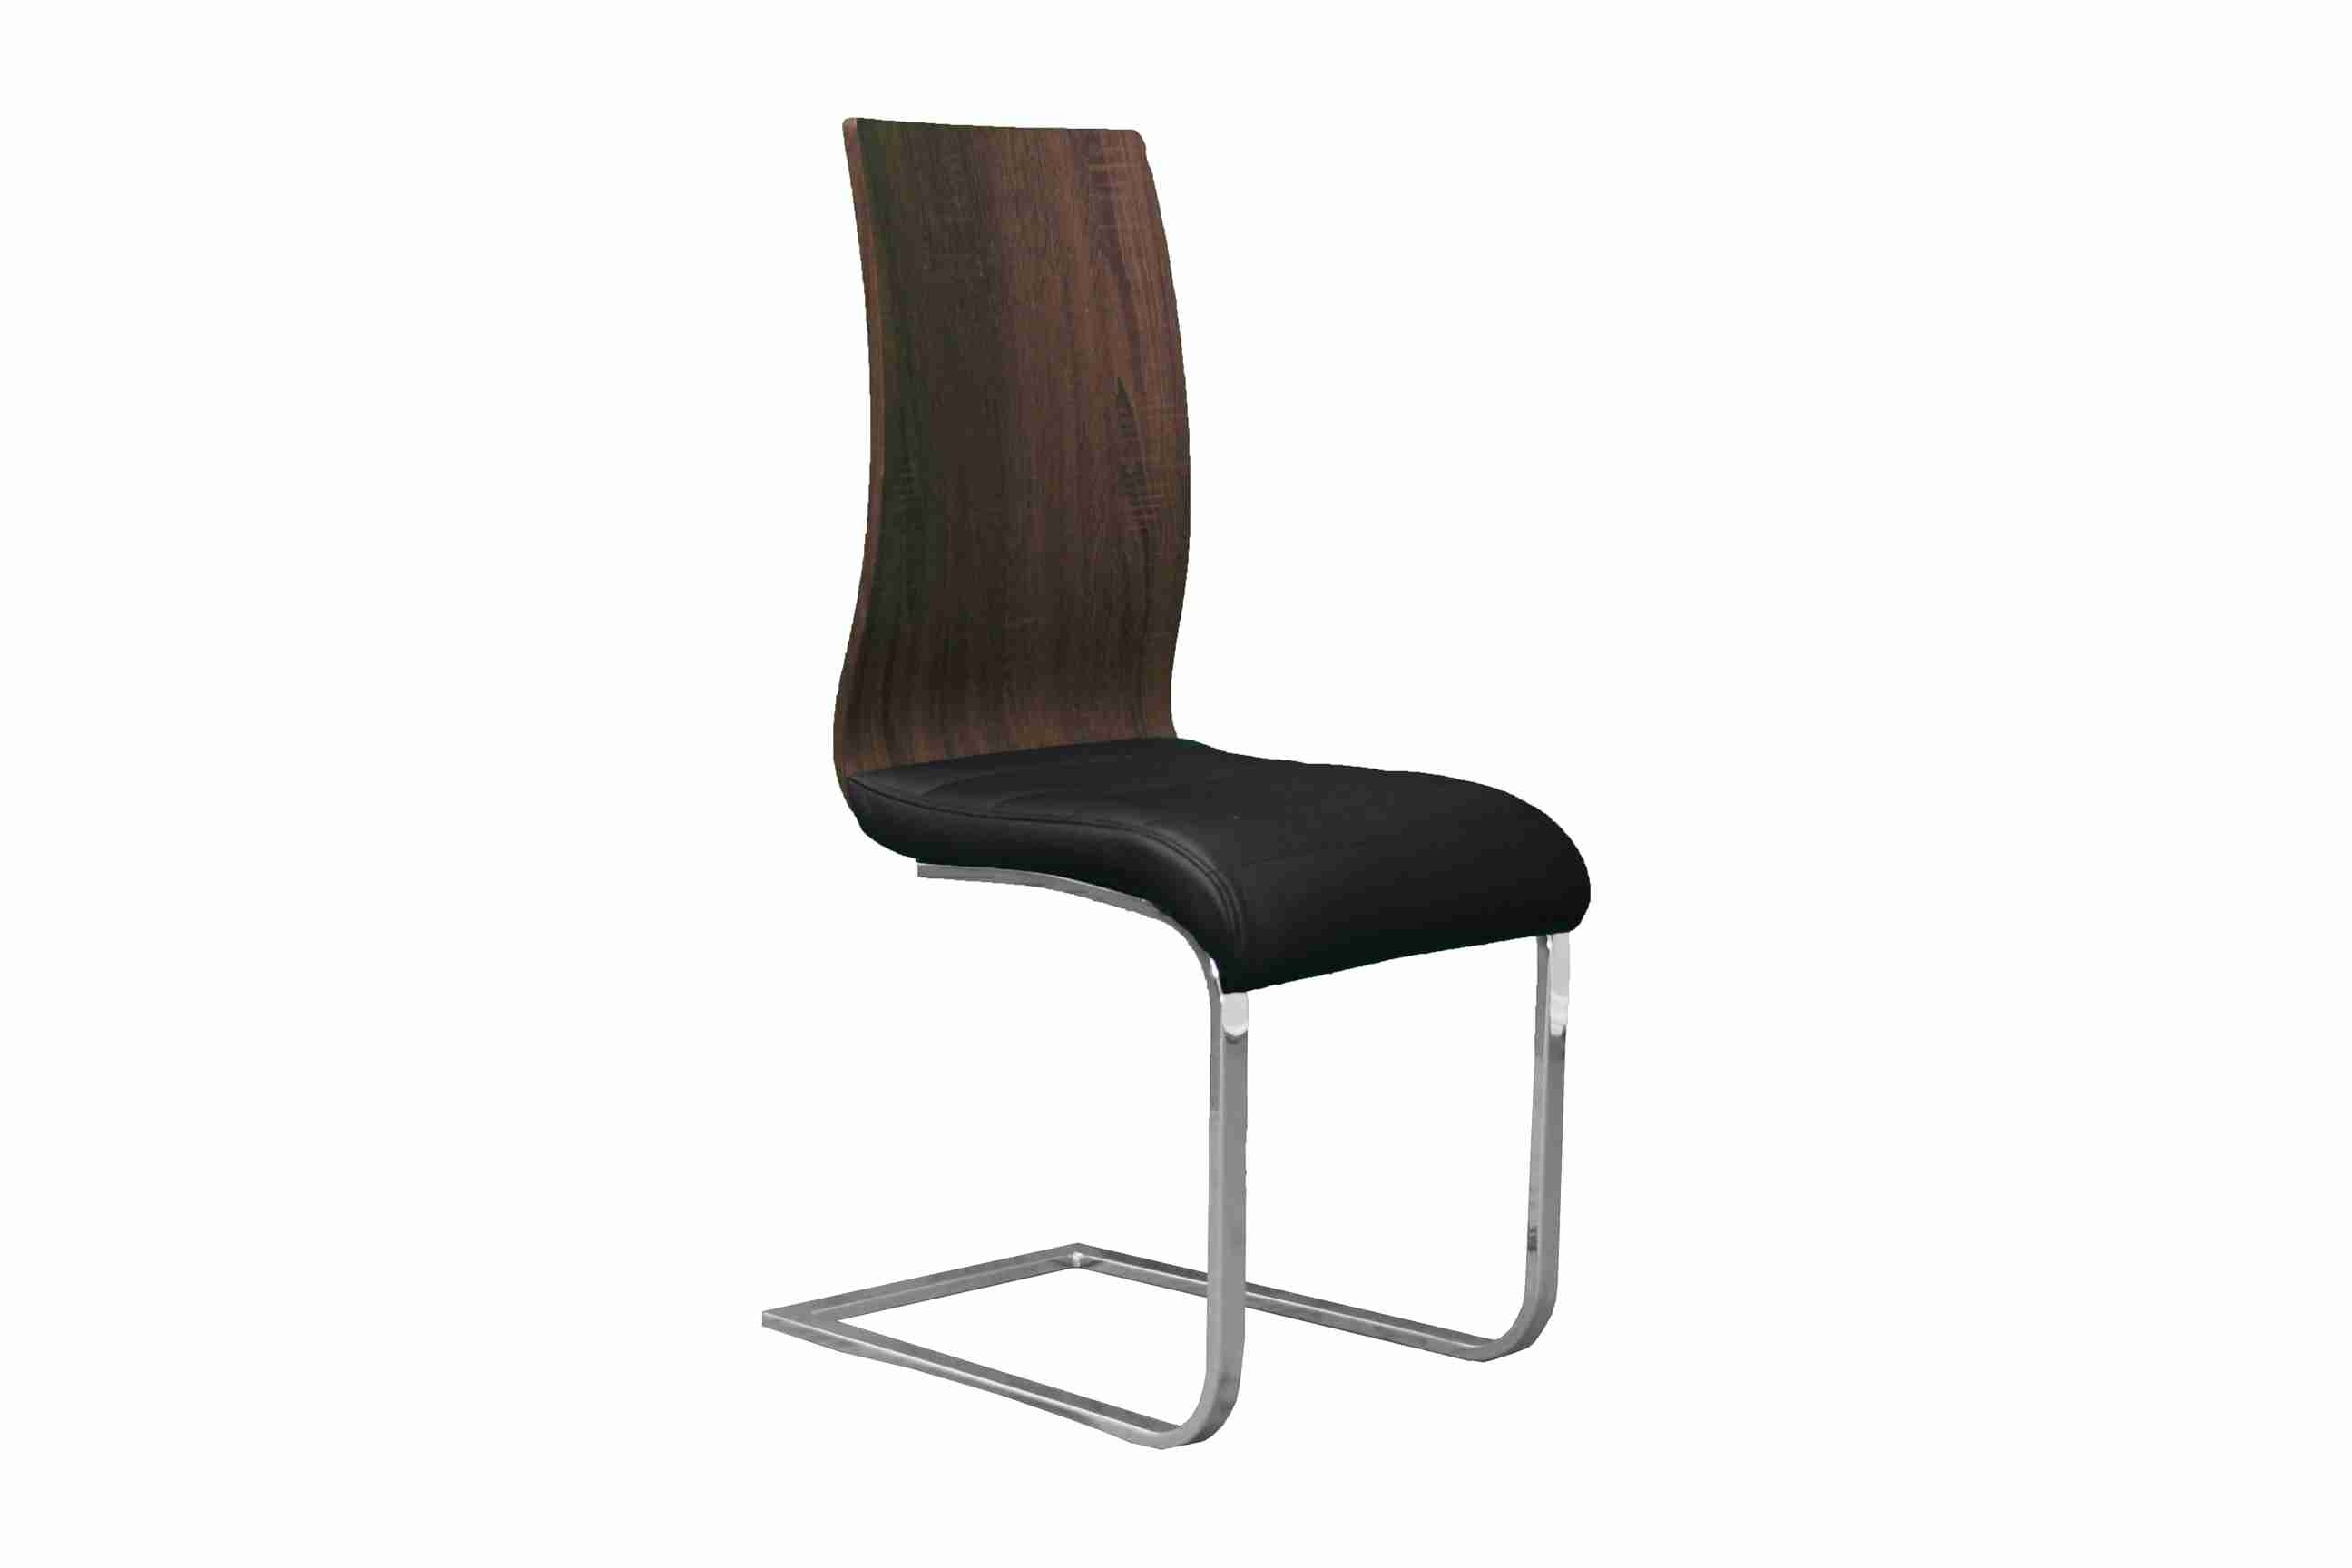 Side Chair Wooden/PVC Leather in Brown/D. Brown & Black (Set of 2) - ITEM # UH-977-BRW/DRK-BRW